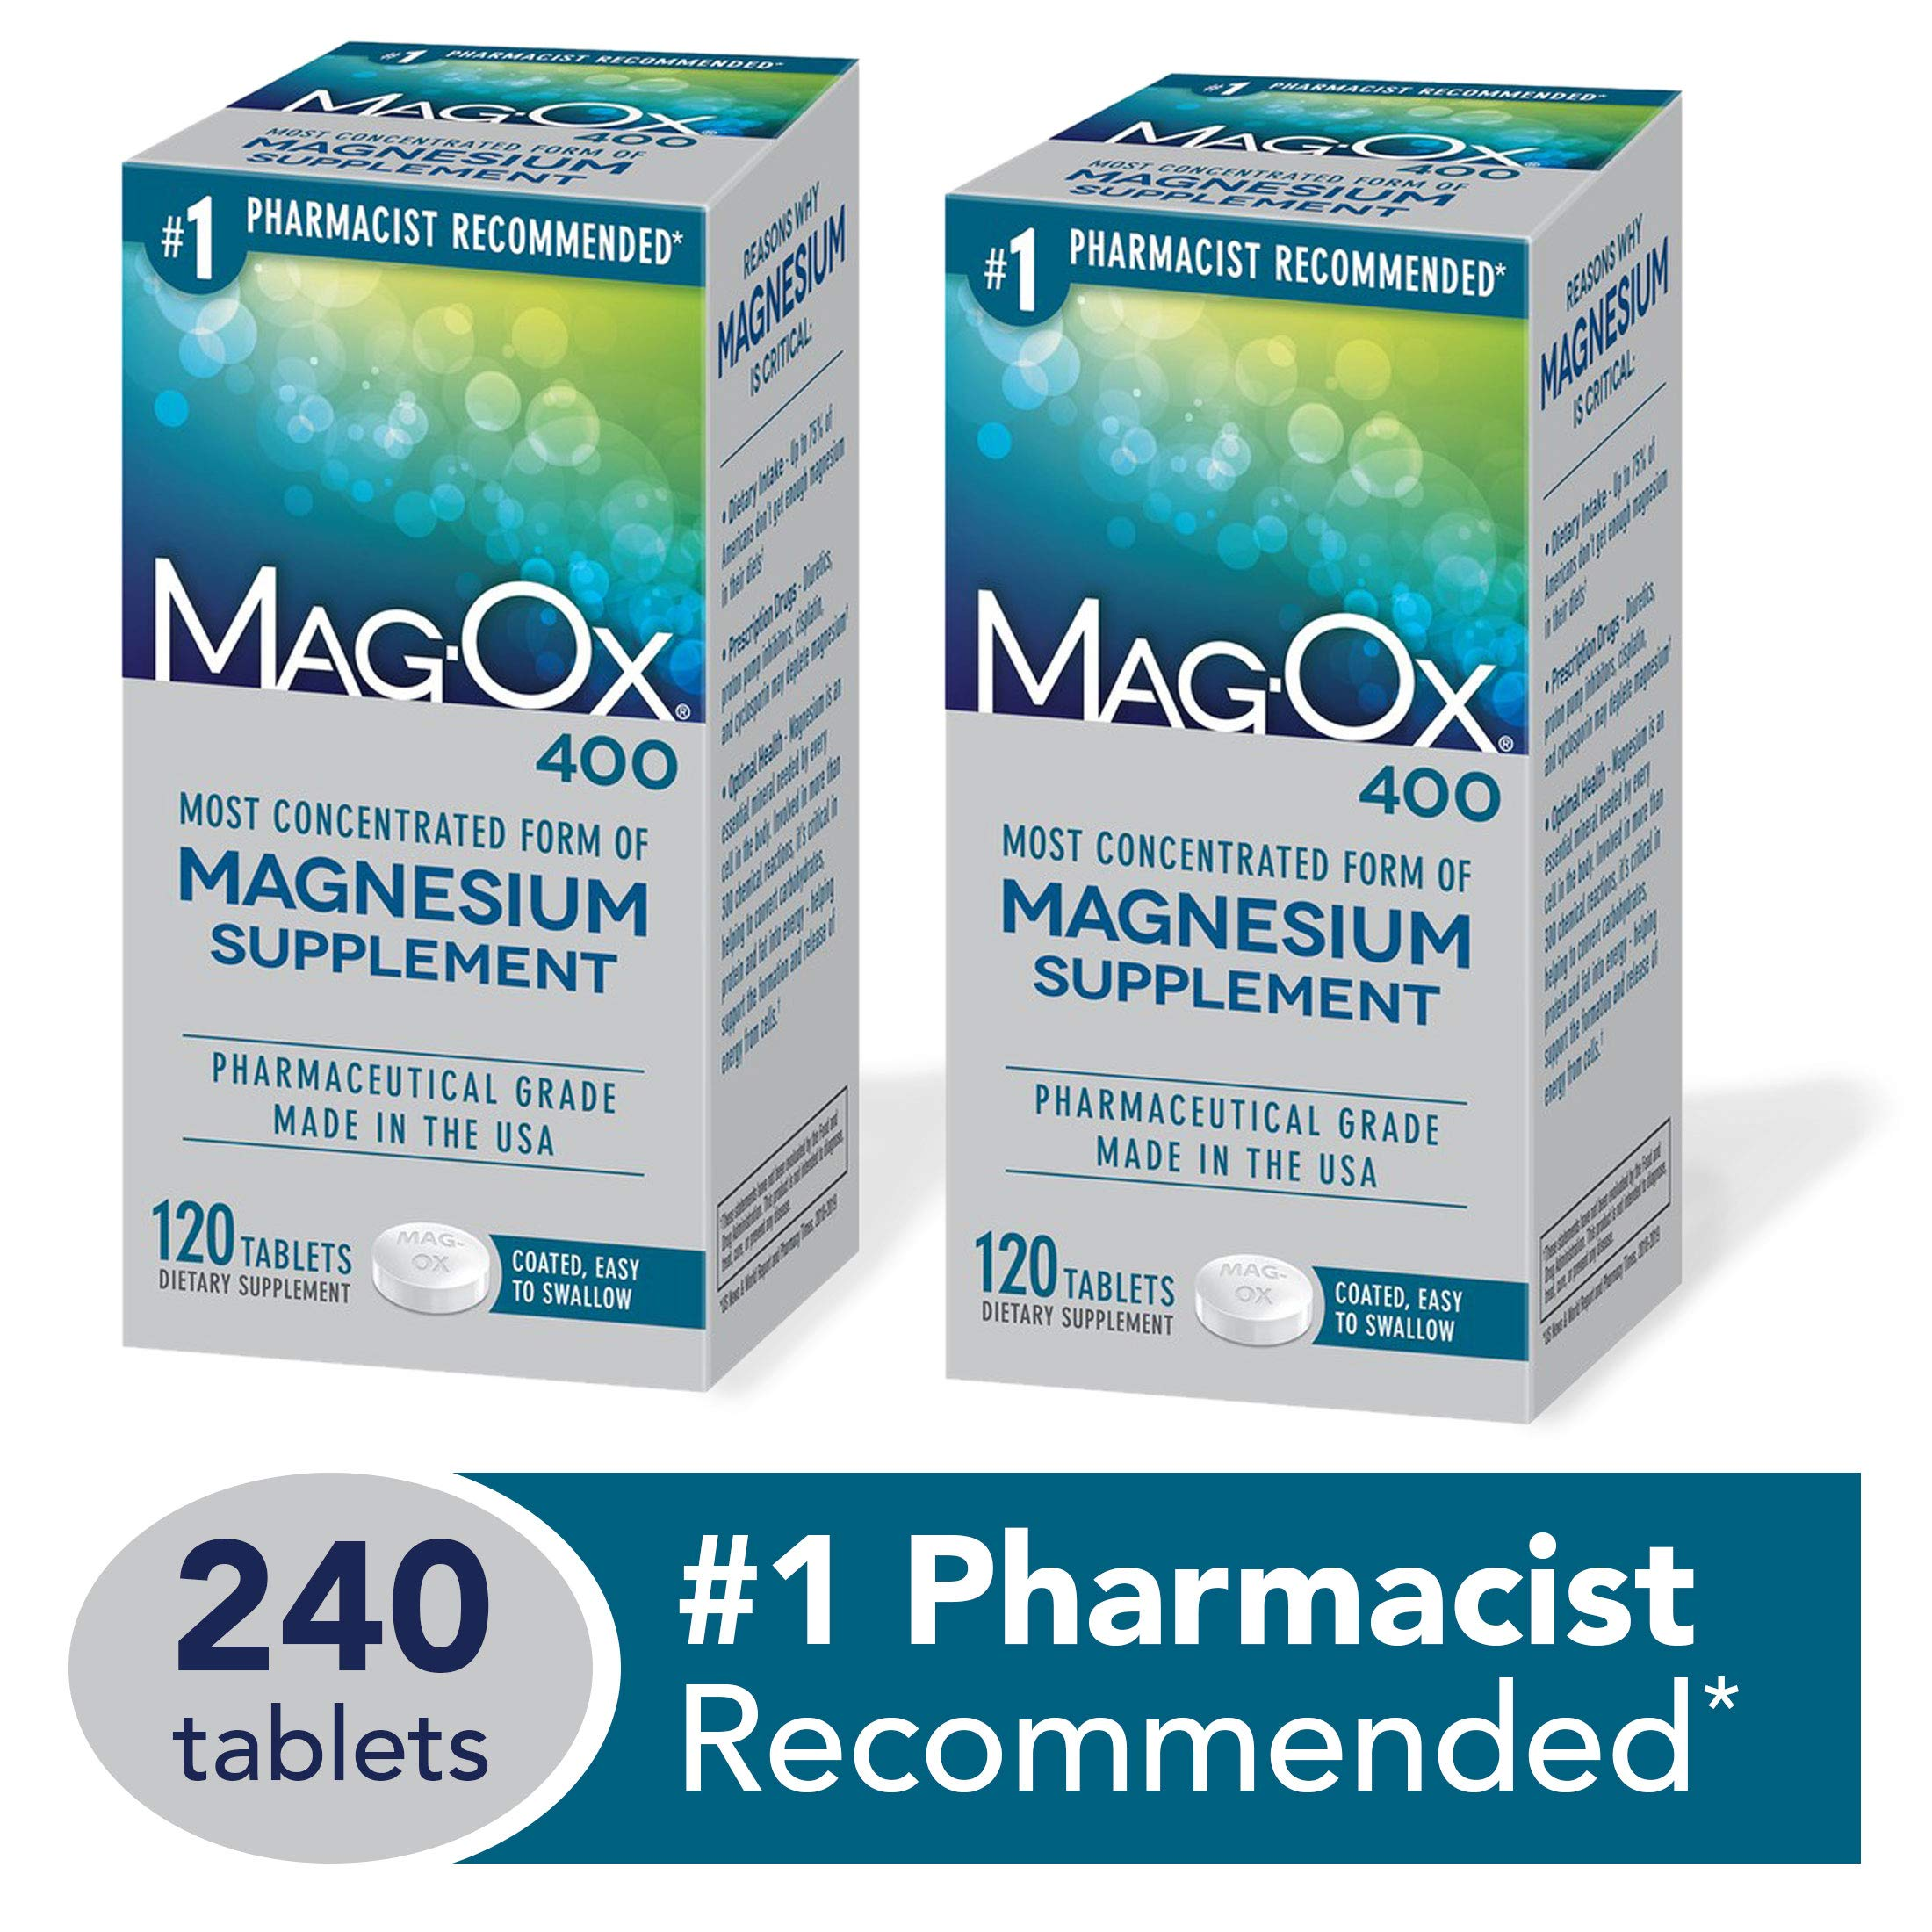 Mag-Ox 400 Magnesium Mineral Dietary Supplement Tablets, Magnesium Oxide, Pharmaceutical Grade, 120 Count, 2 Pack